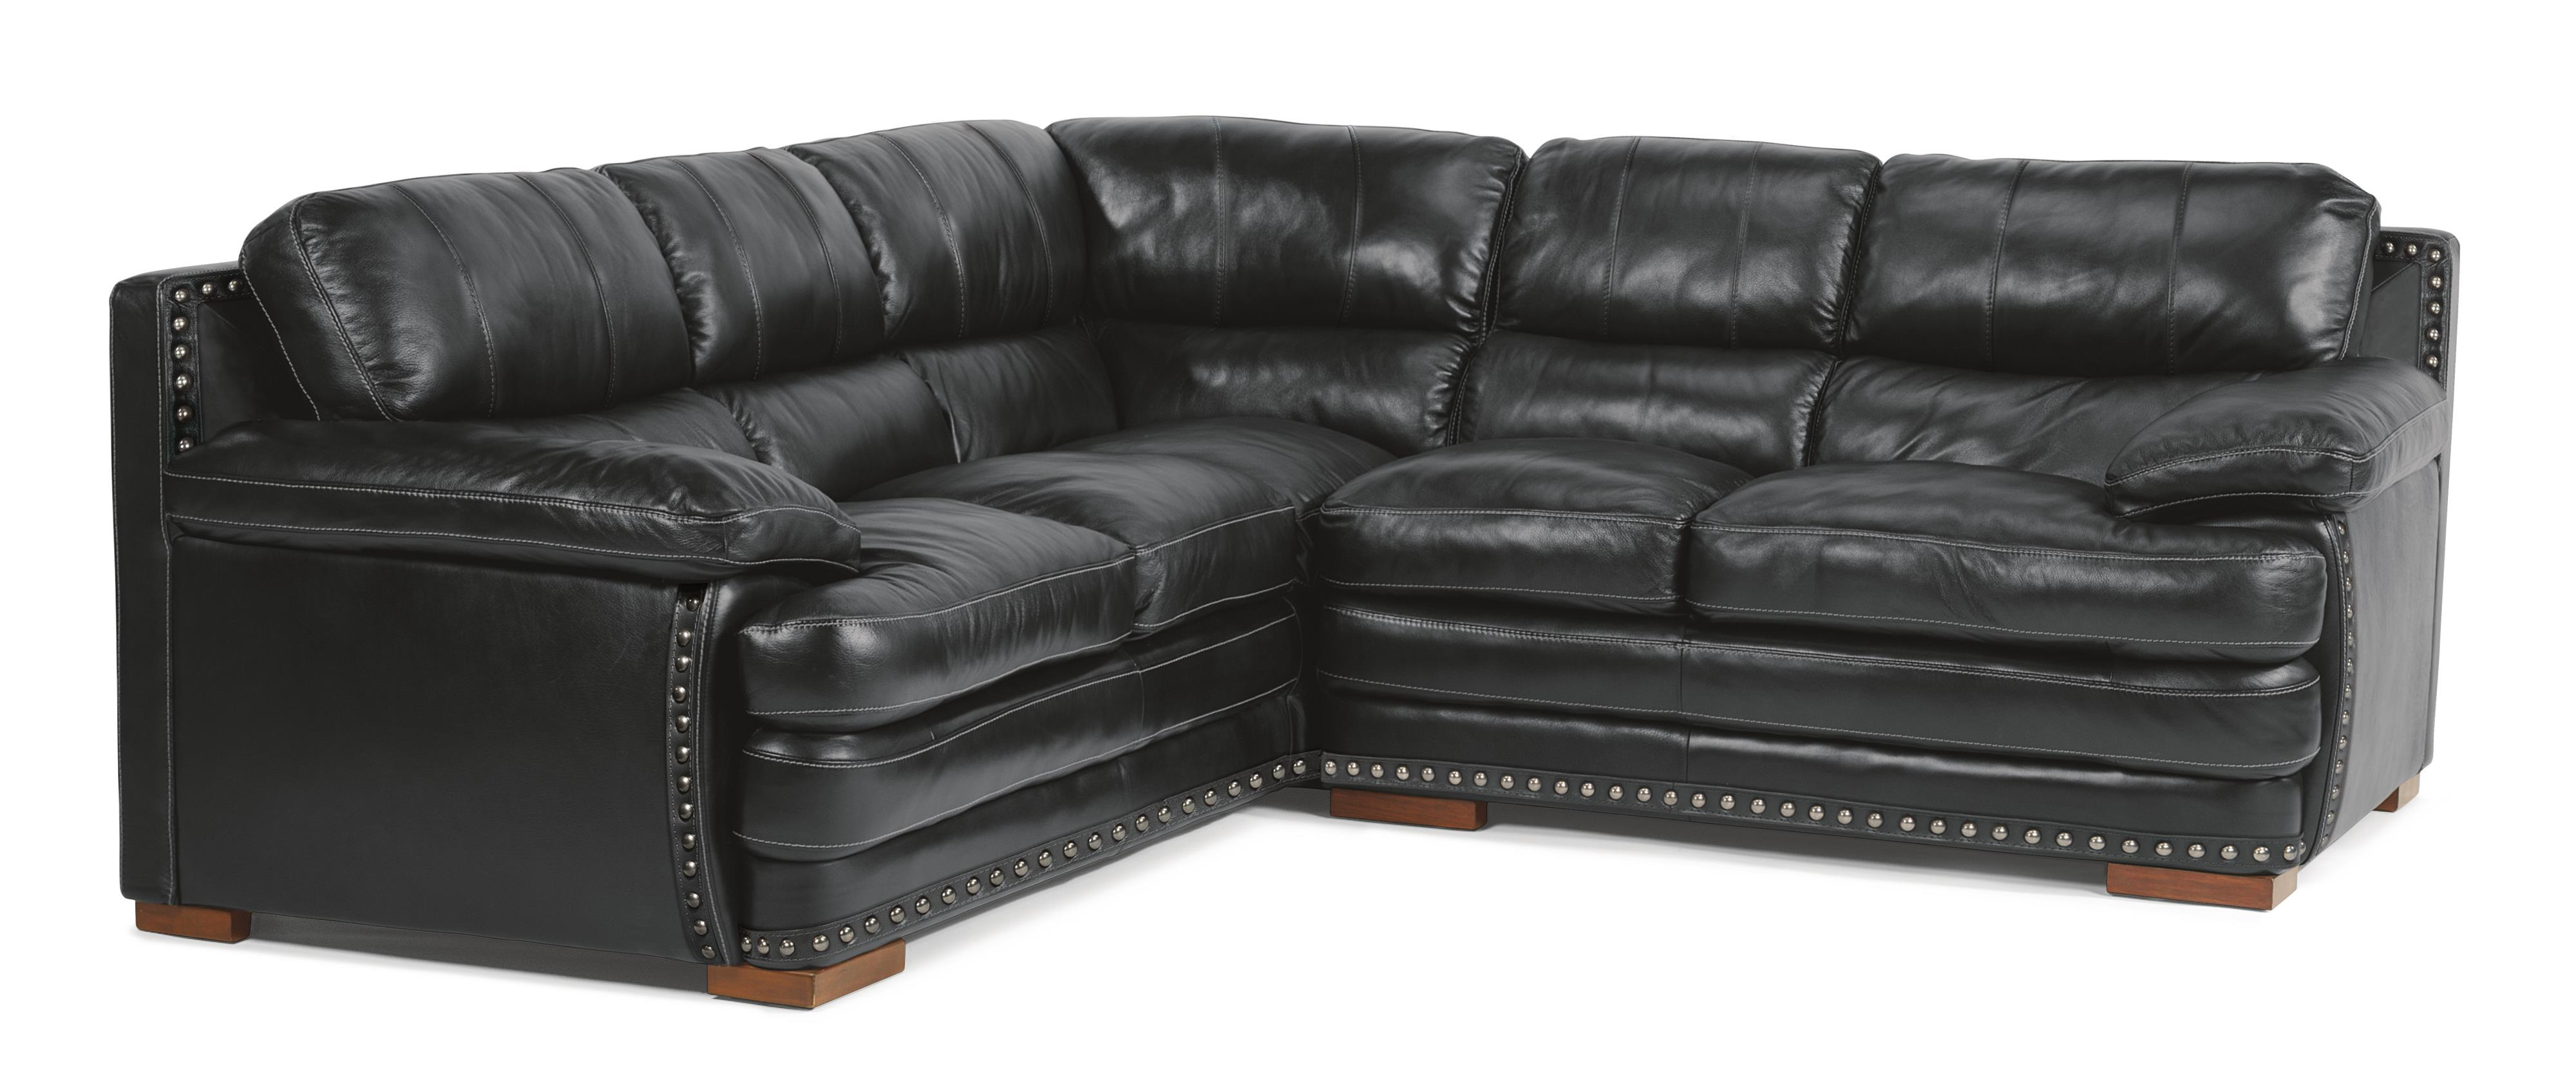 Flexsteel Latitudes - Dylan Sectional with Armless Chair & Nailheads - Item Number: 1627-33+19+28-704-00